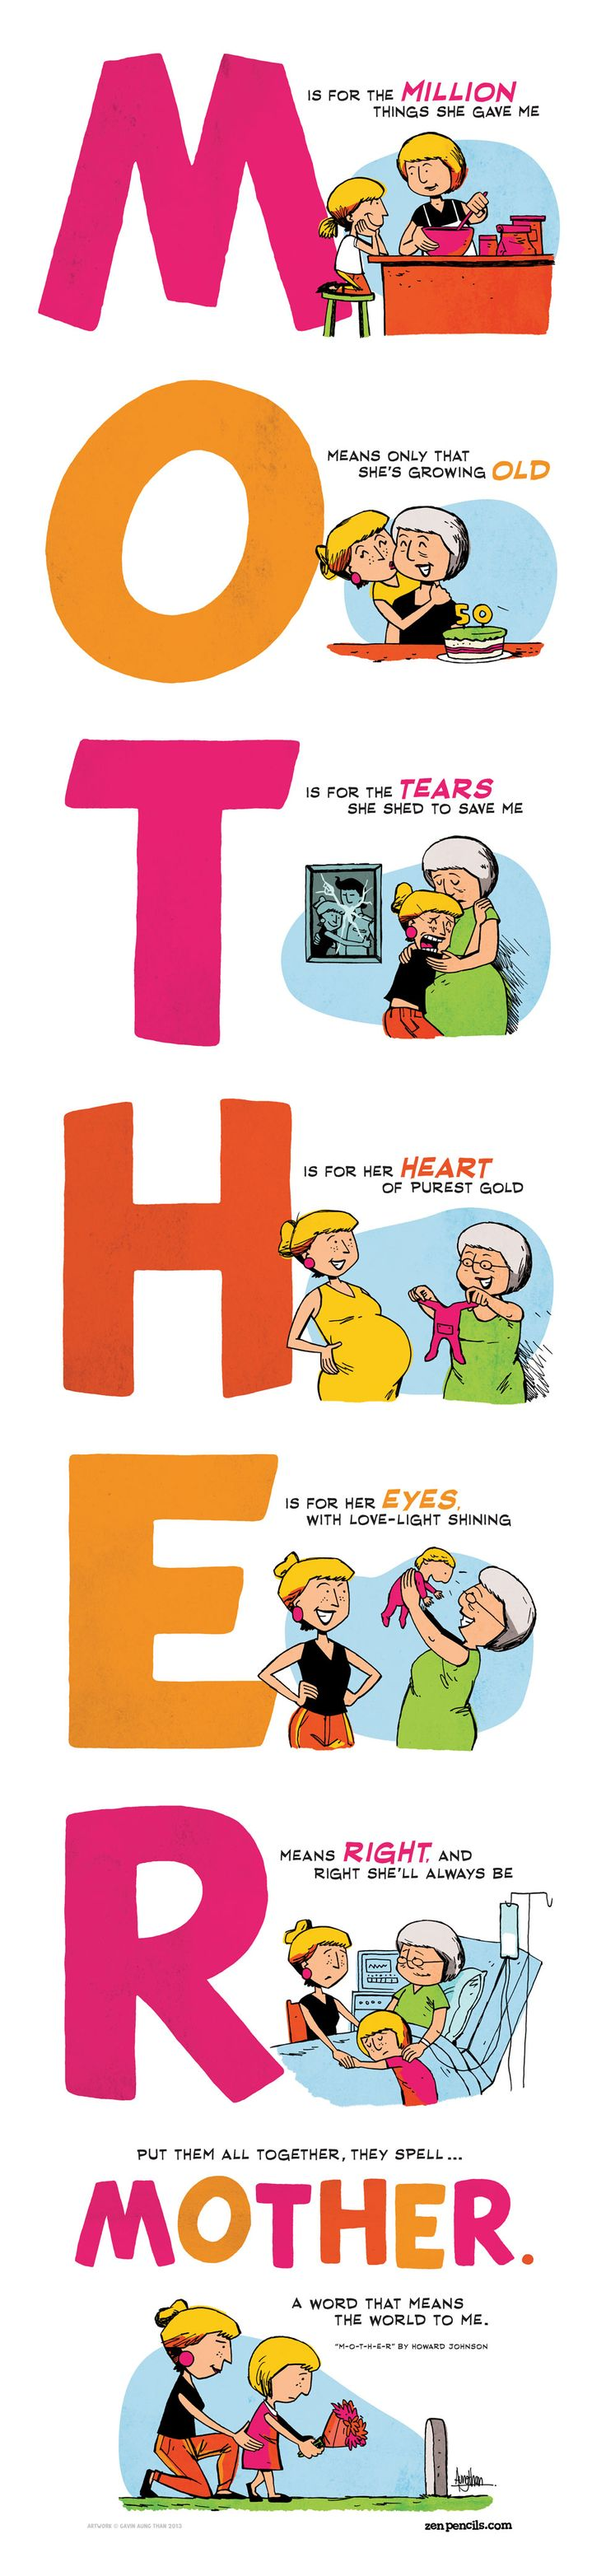 ZEN PENCILS Cartoon quotes from inspirational folkst so much funny but something that represents something good